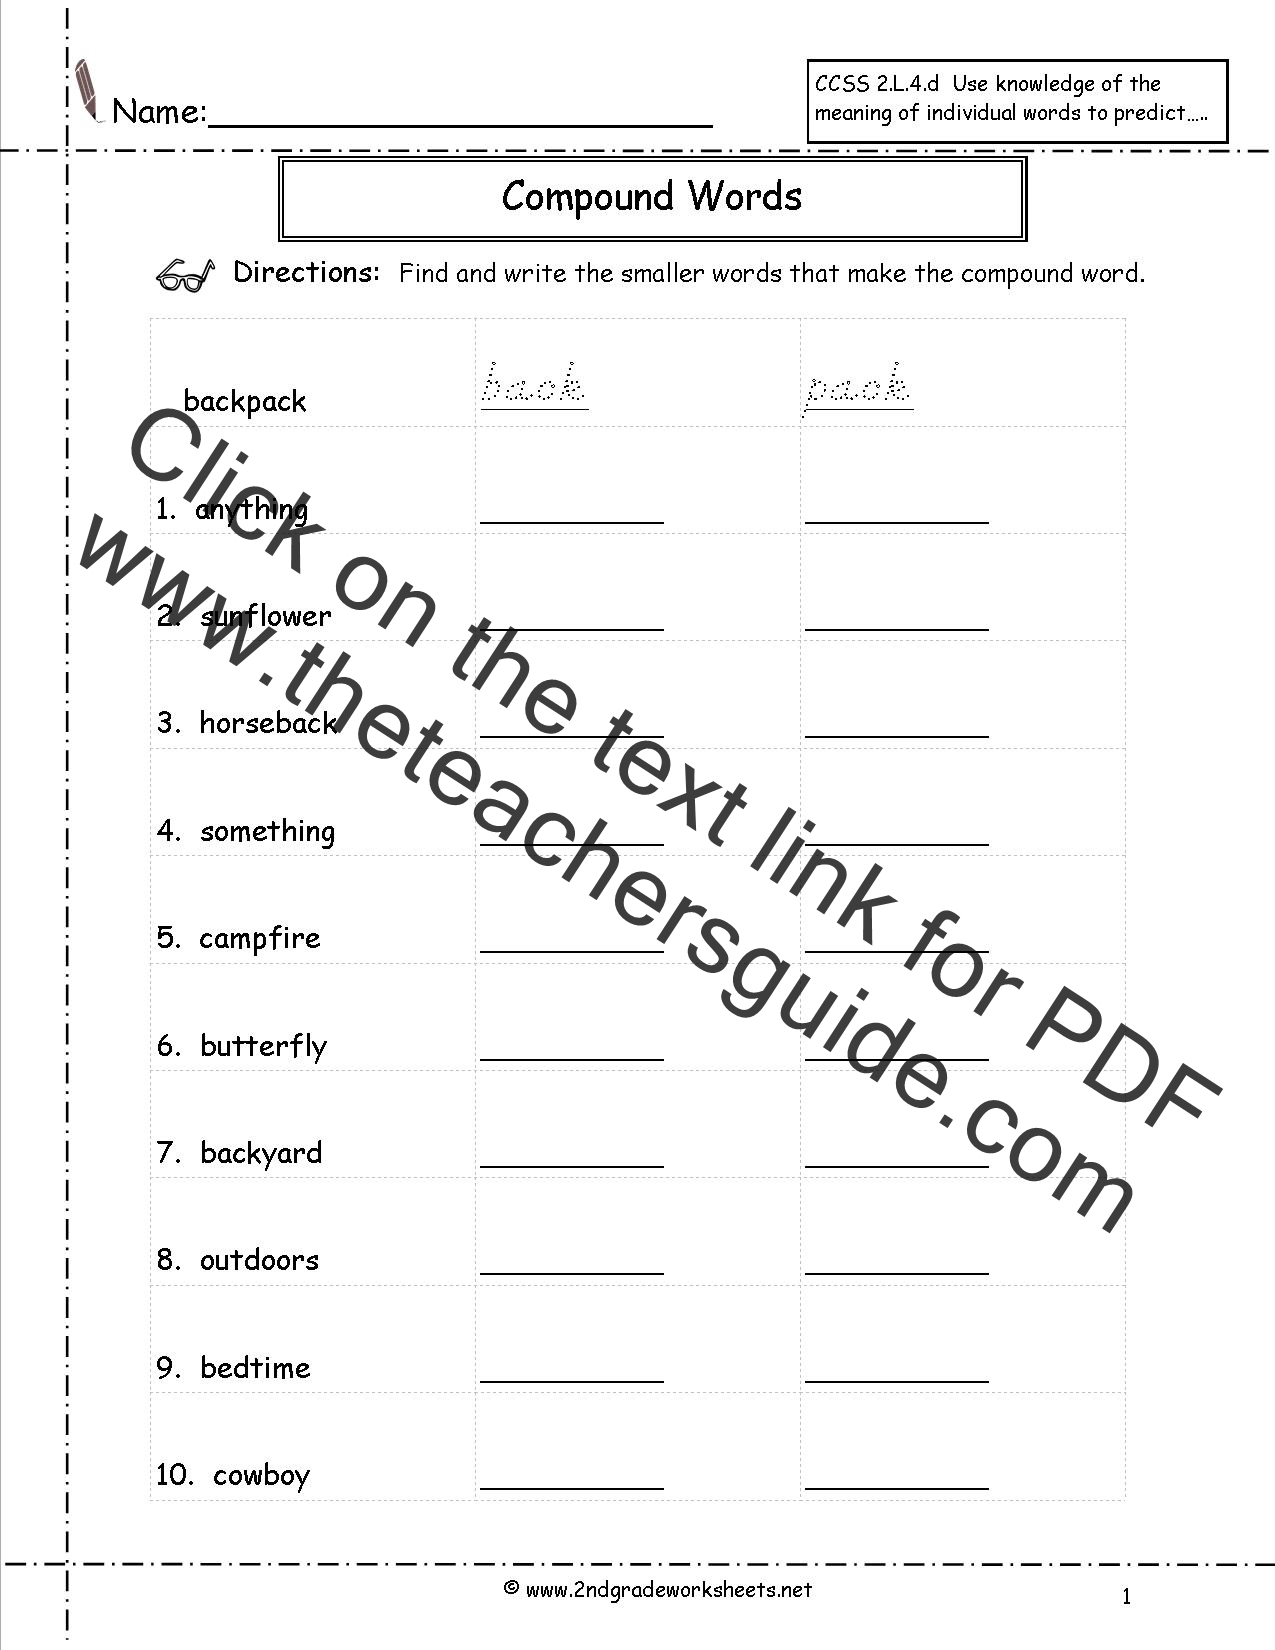 Worksheet 2nd Grade Grammar Worksheets free languagegrammar worksheets and printouts compound words worksheets